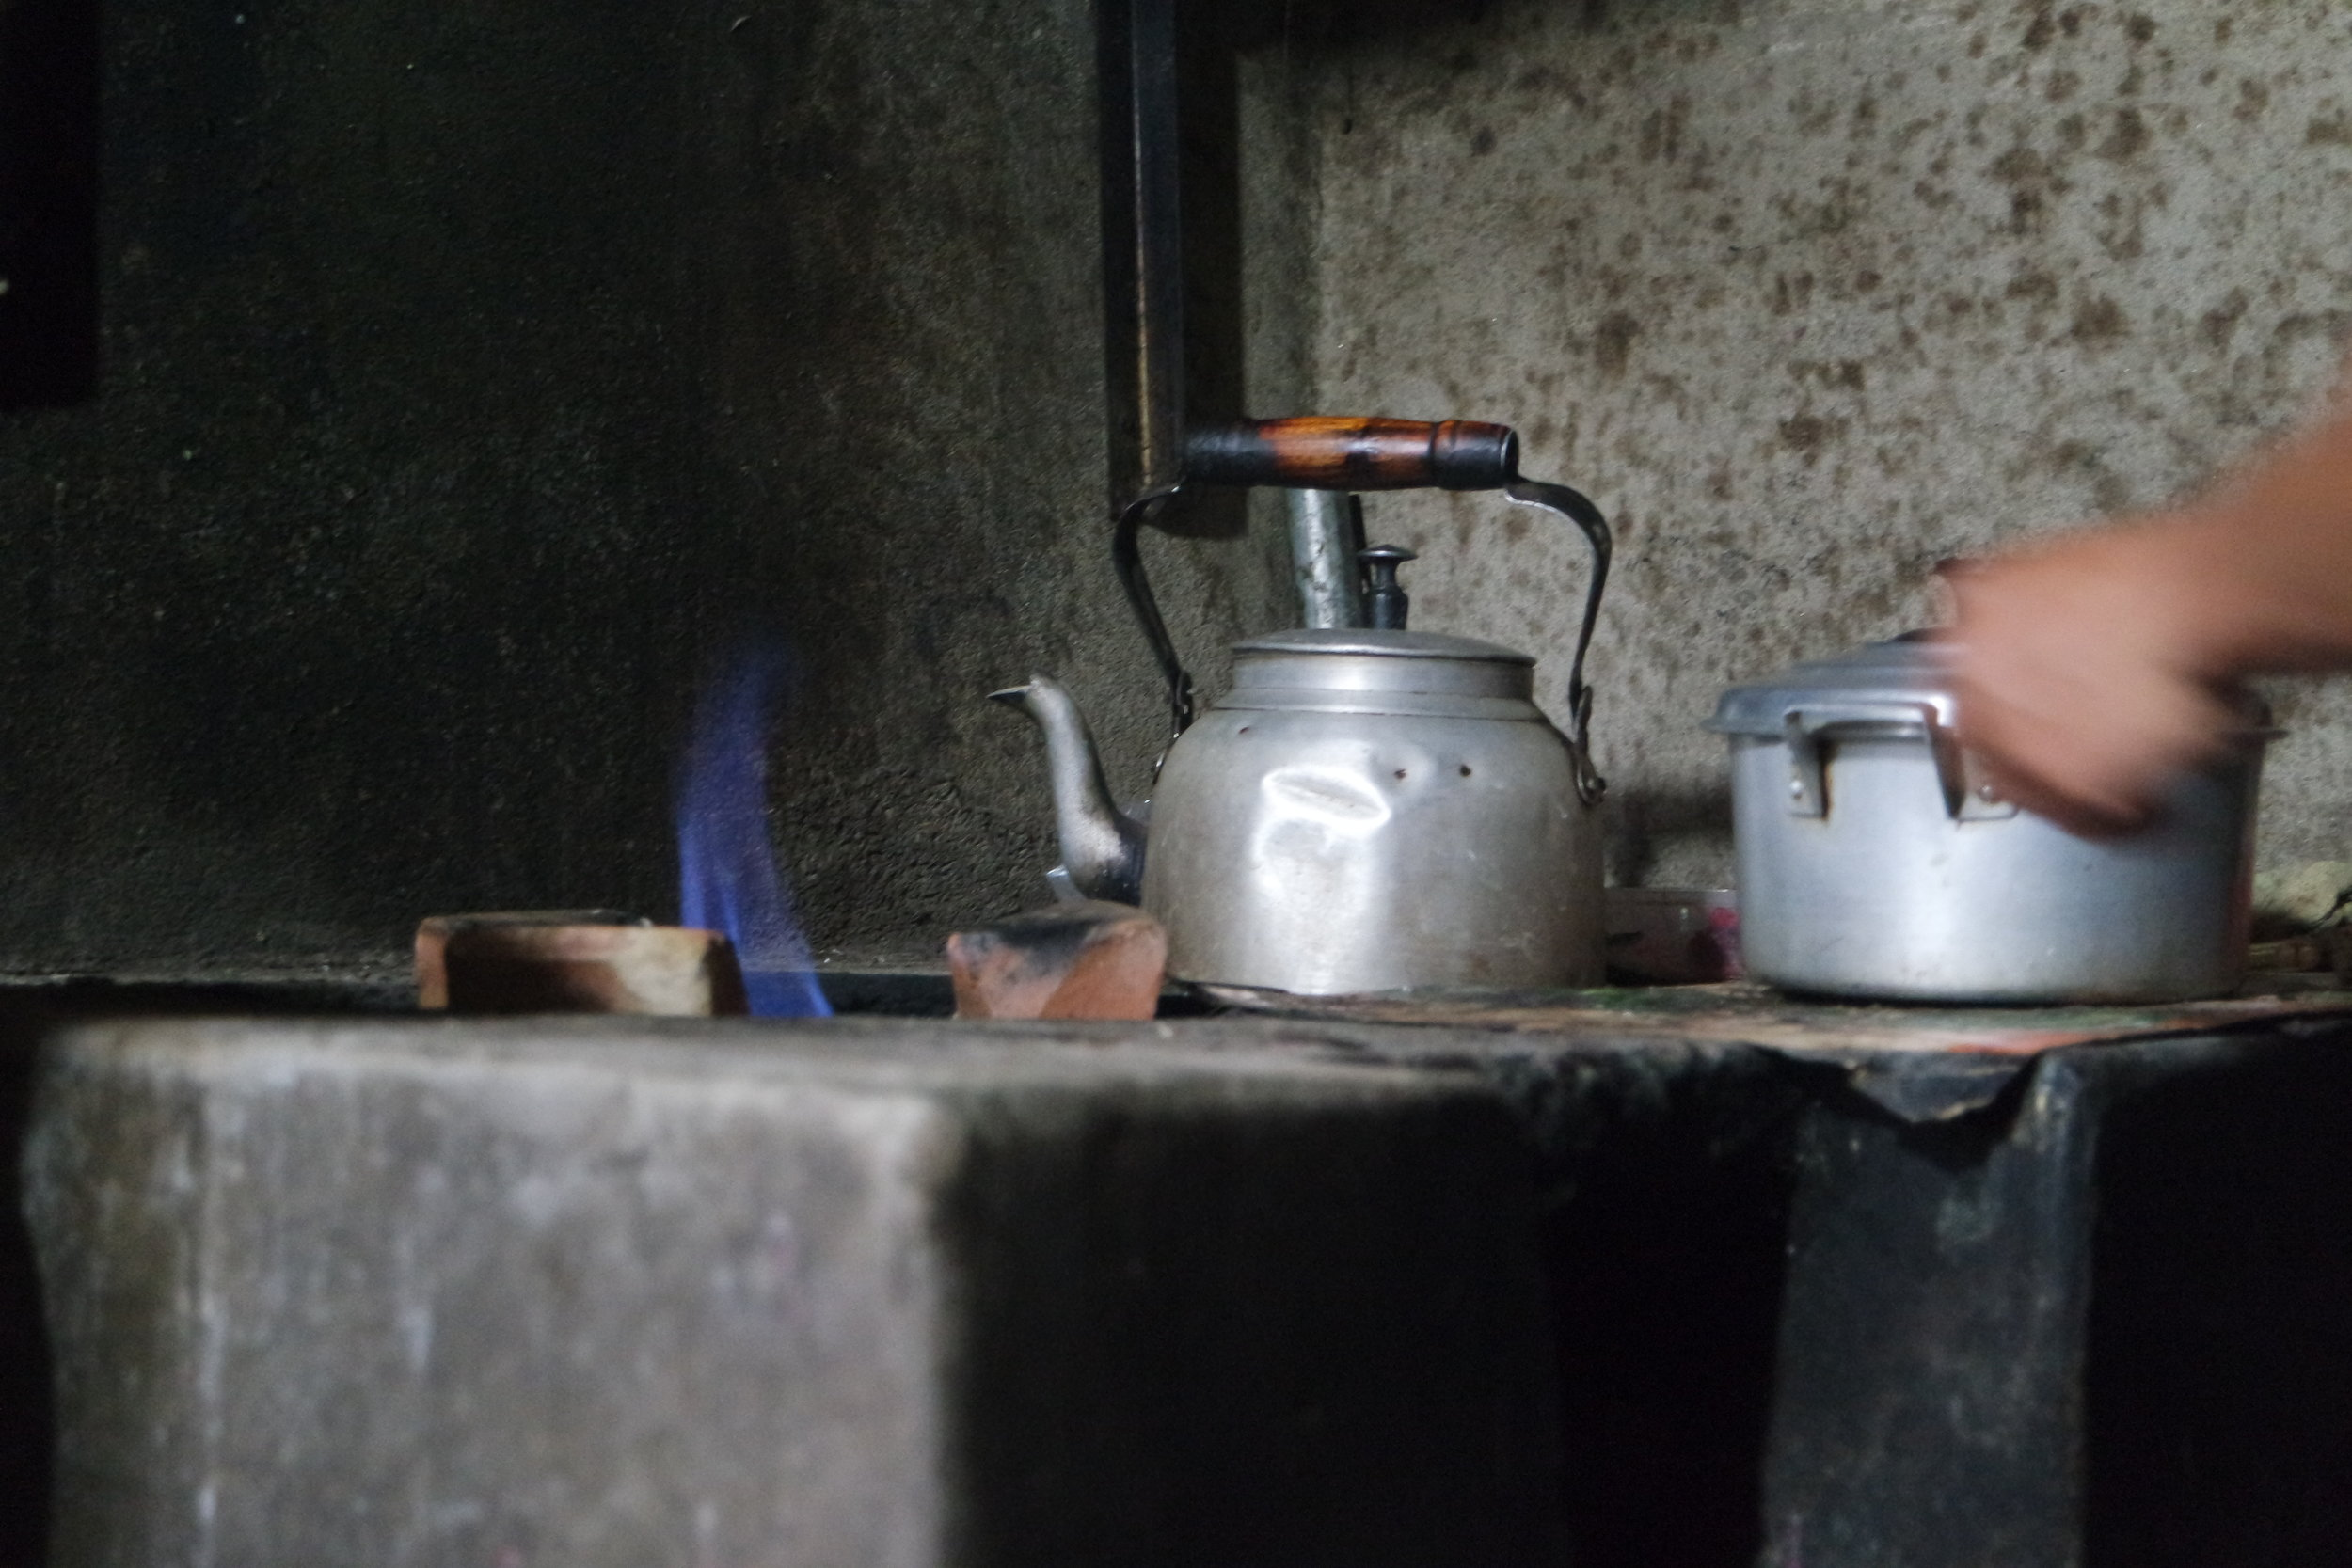 Cooking with biogas reduce harmful indoor airpollution, treat waste and is a low tech solution.